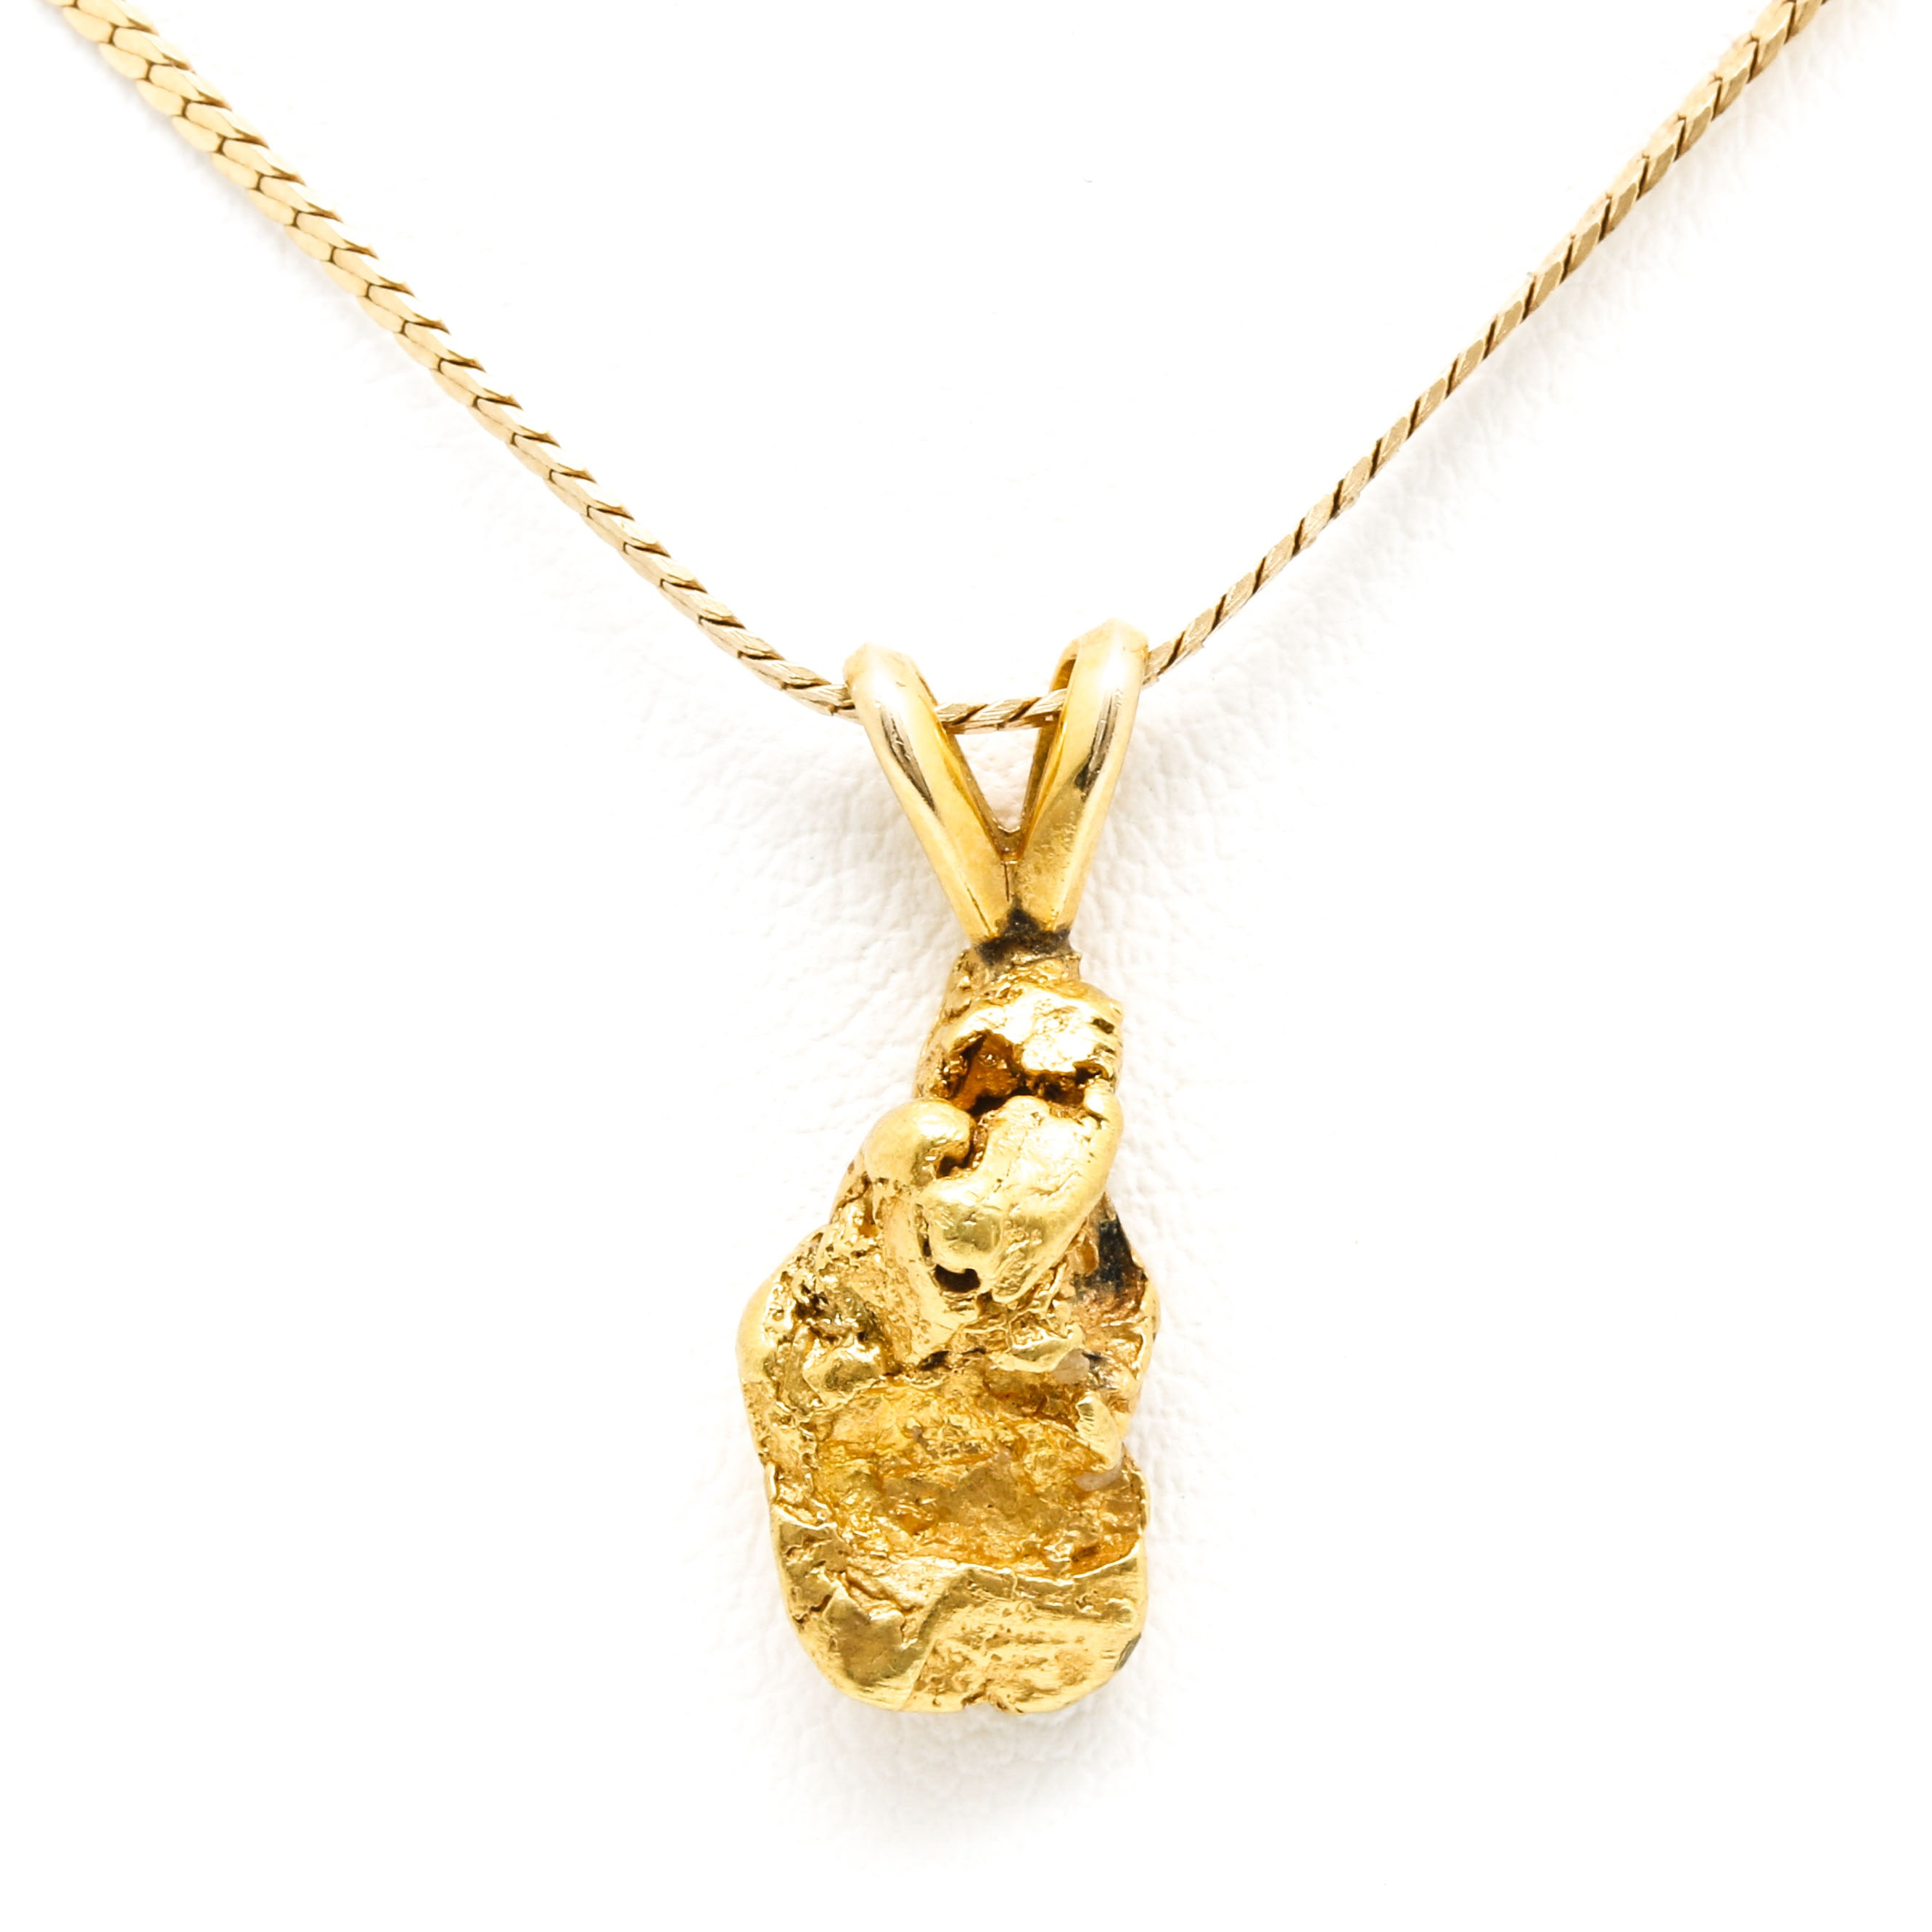 18K and 14K Yellow Gold Pendant Necklace